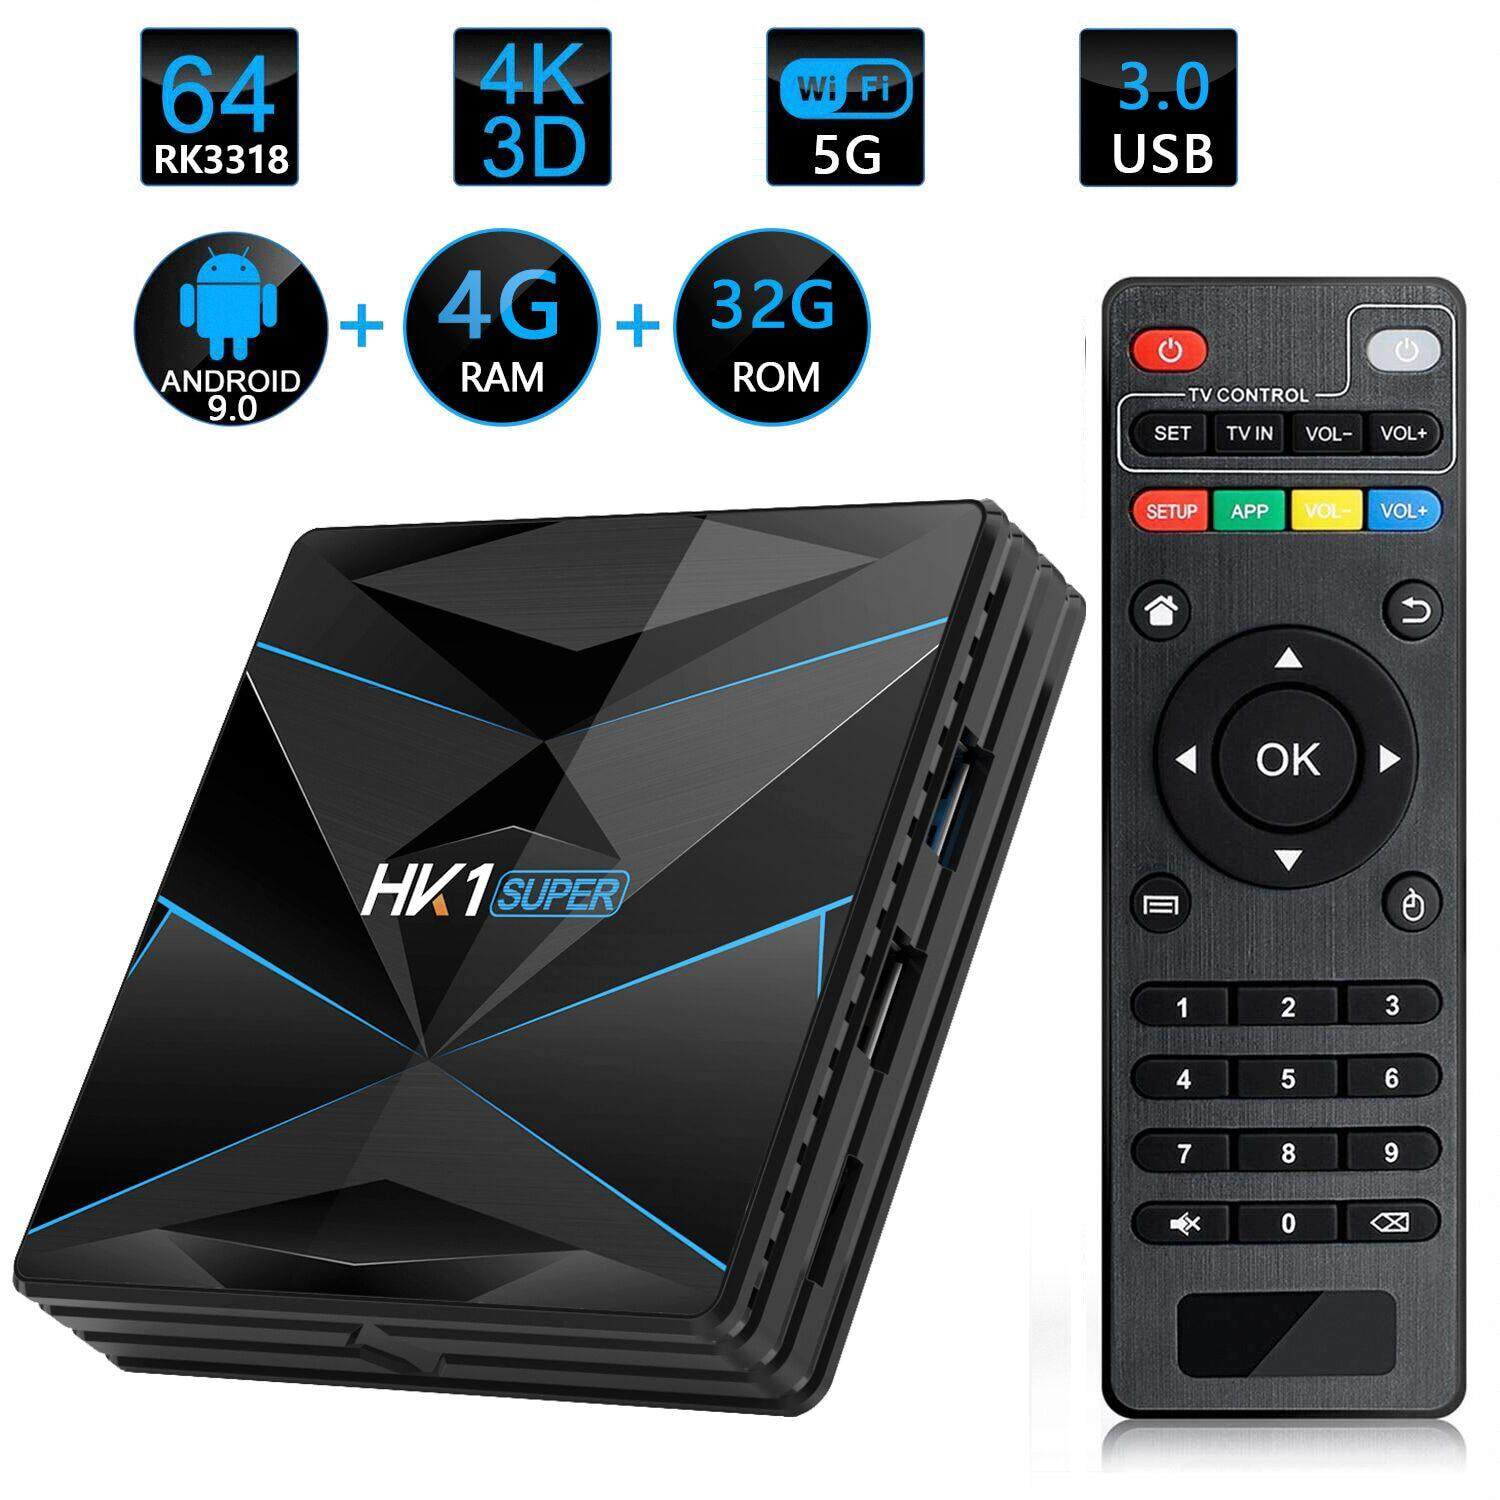 สินเชื่อบุคคลซิตี้  ปัตตานี 【HK1 Super】 Android 9 0 Smart TV BOX Google asistente RK3318 4K 3D Ultra HD 4G 64G TV wifi Play Store Apps gratis rápido Set top Box